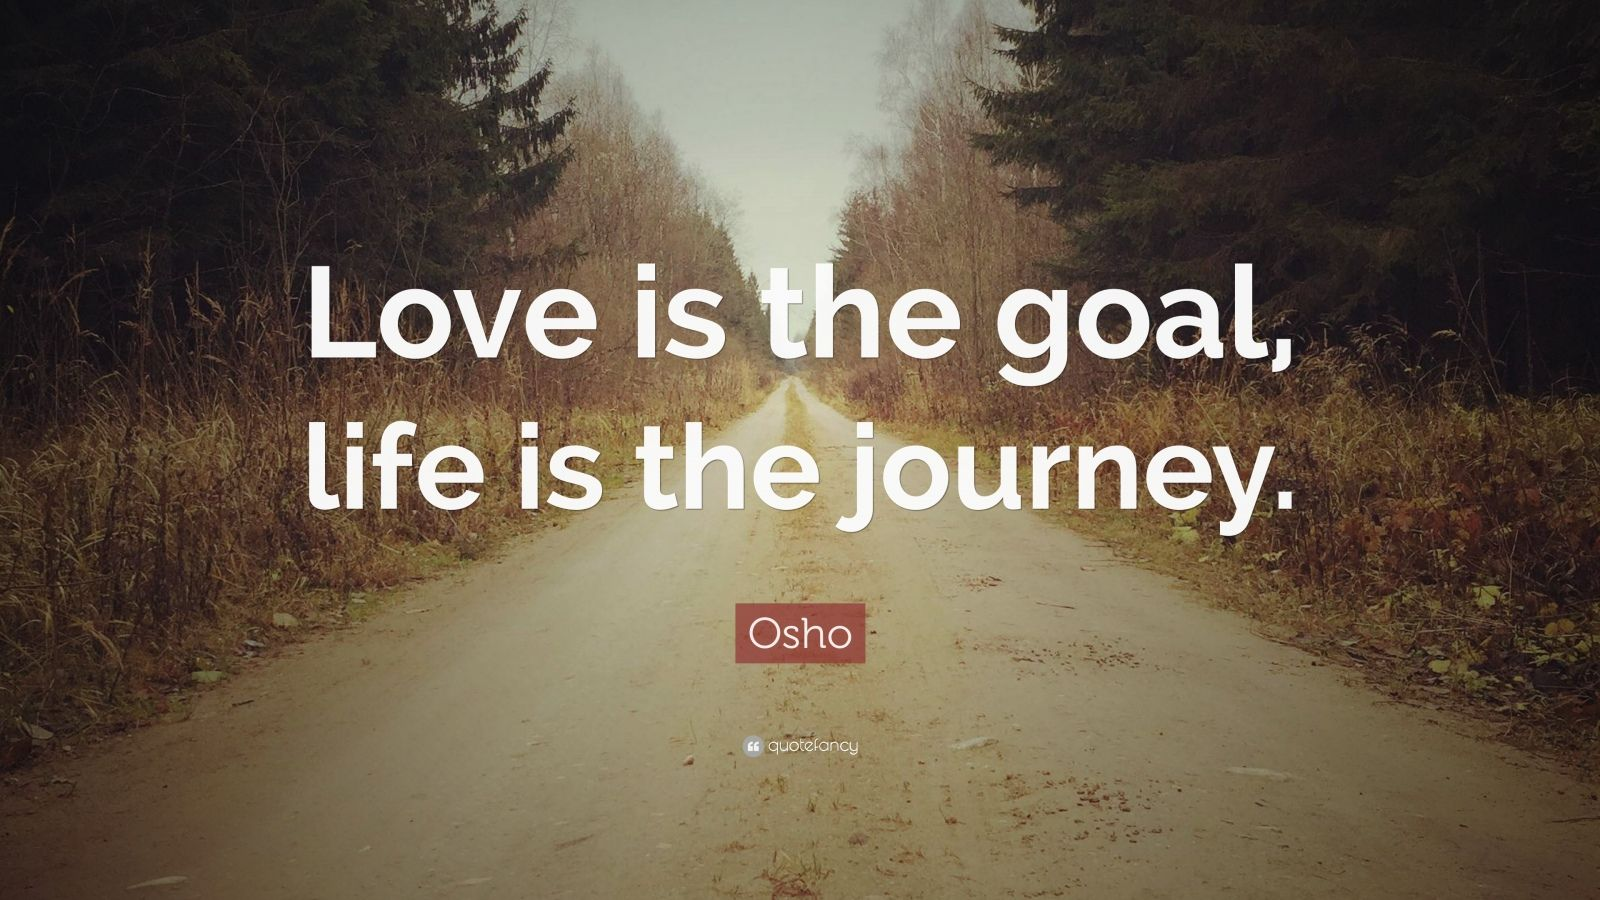 Osho Quotes (41 wallpapers) - Quotefancy